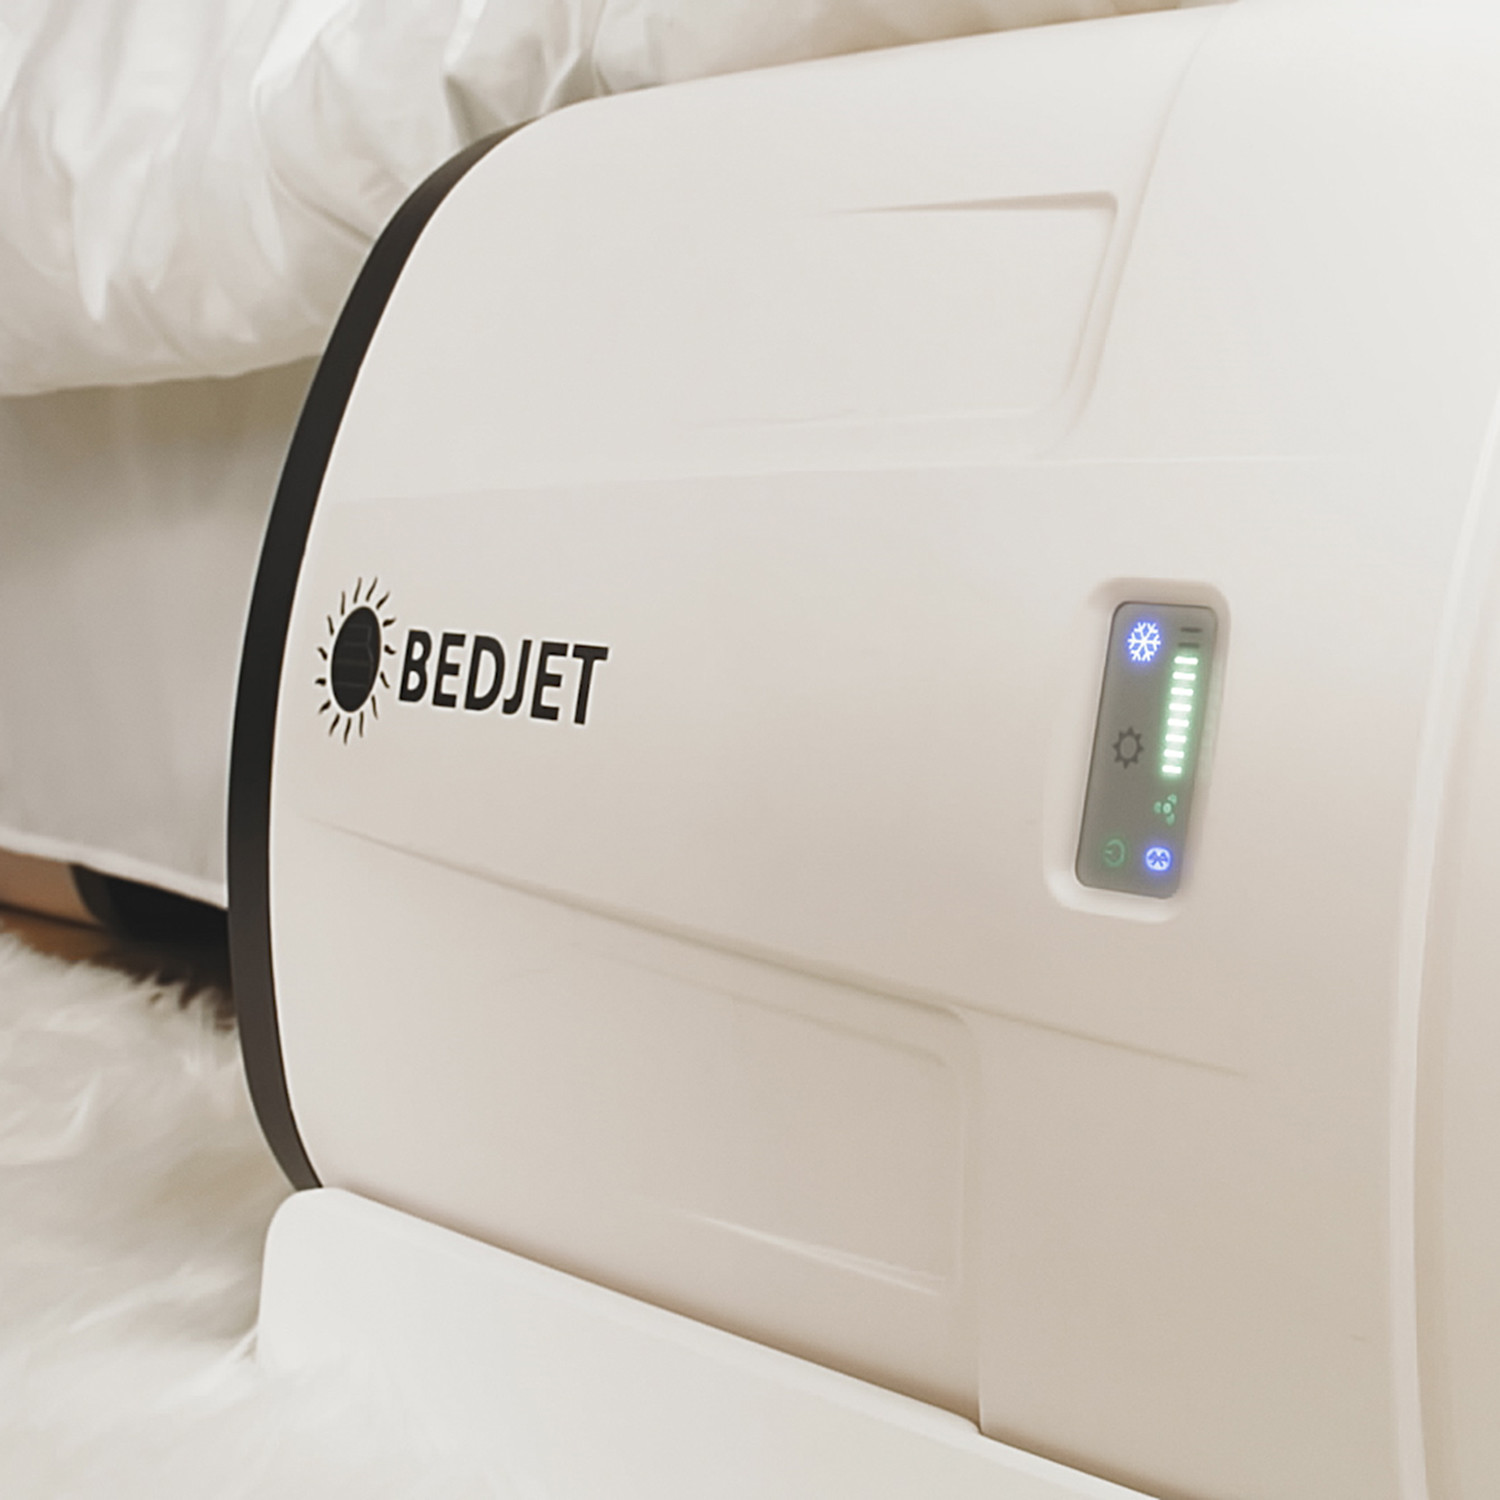 Bedjet V2 Climate Comfort System Bedjet Touch Of Modern